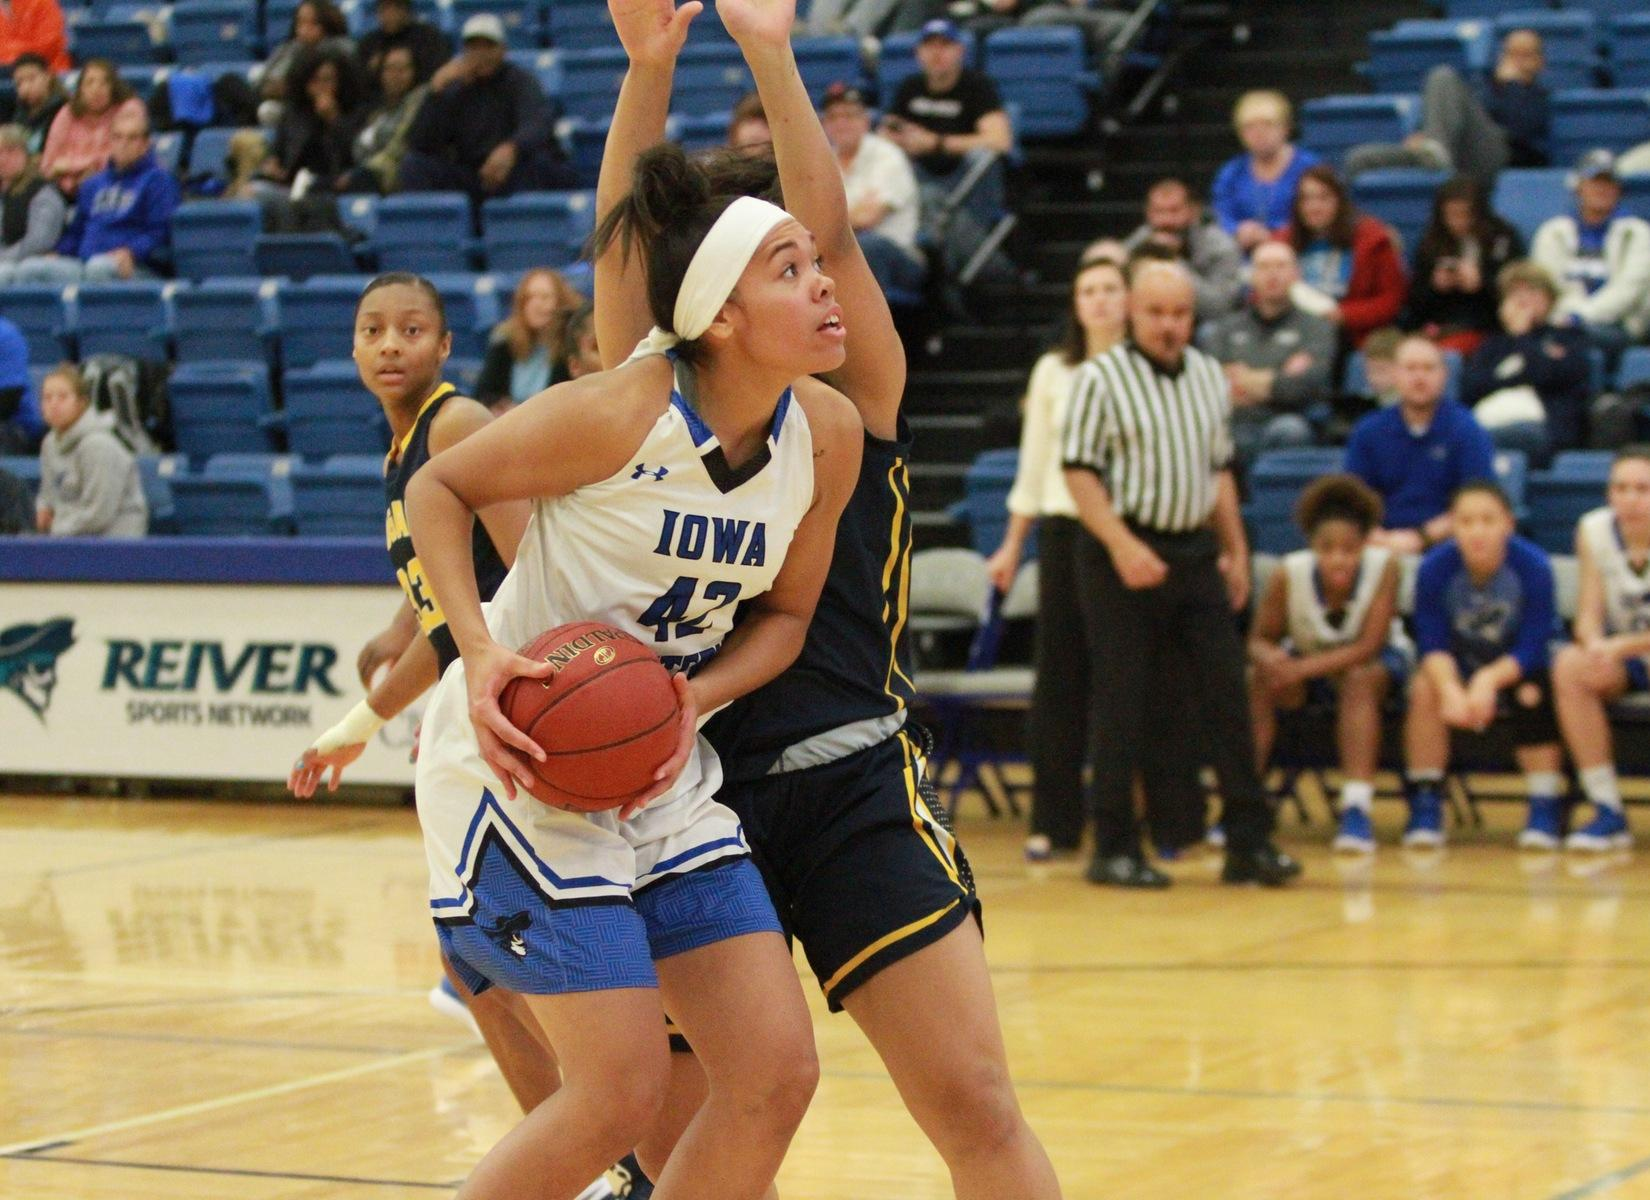 Freshman Kiara Dallmann chipped 12 points on 5 of 7 shooting and six rebounds in the win over Ellsworth Community College.